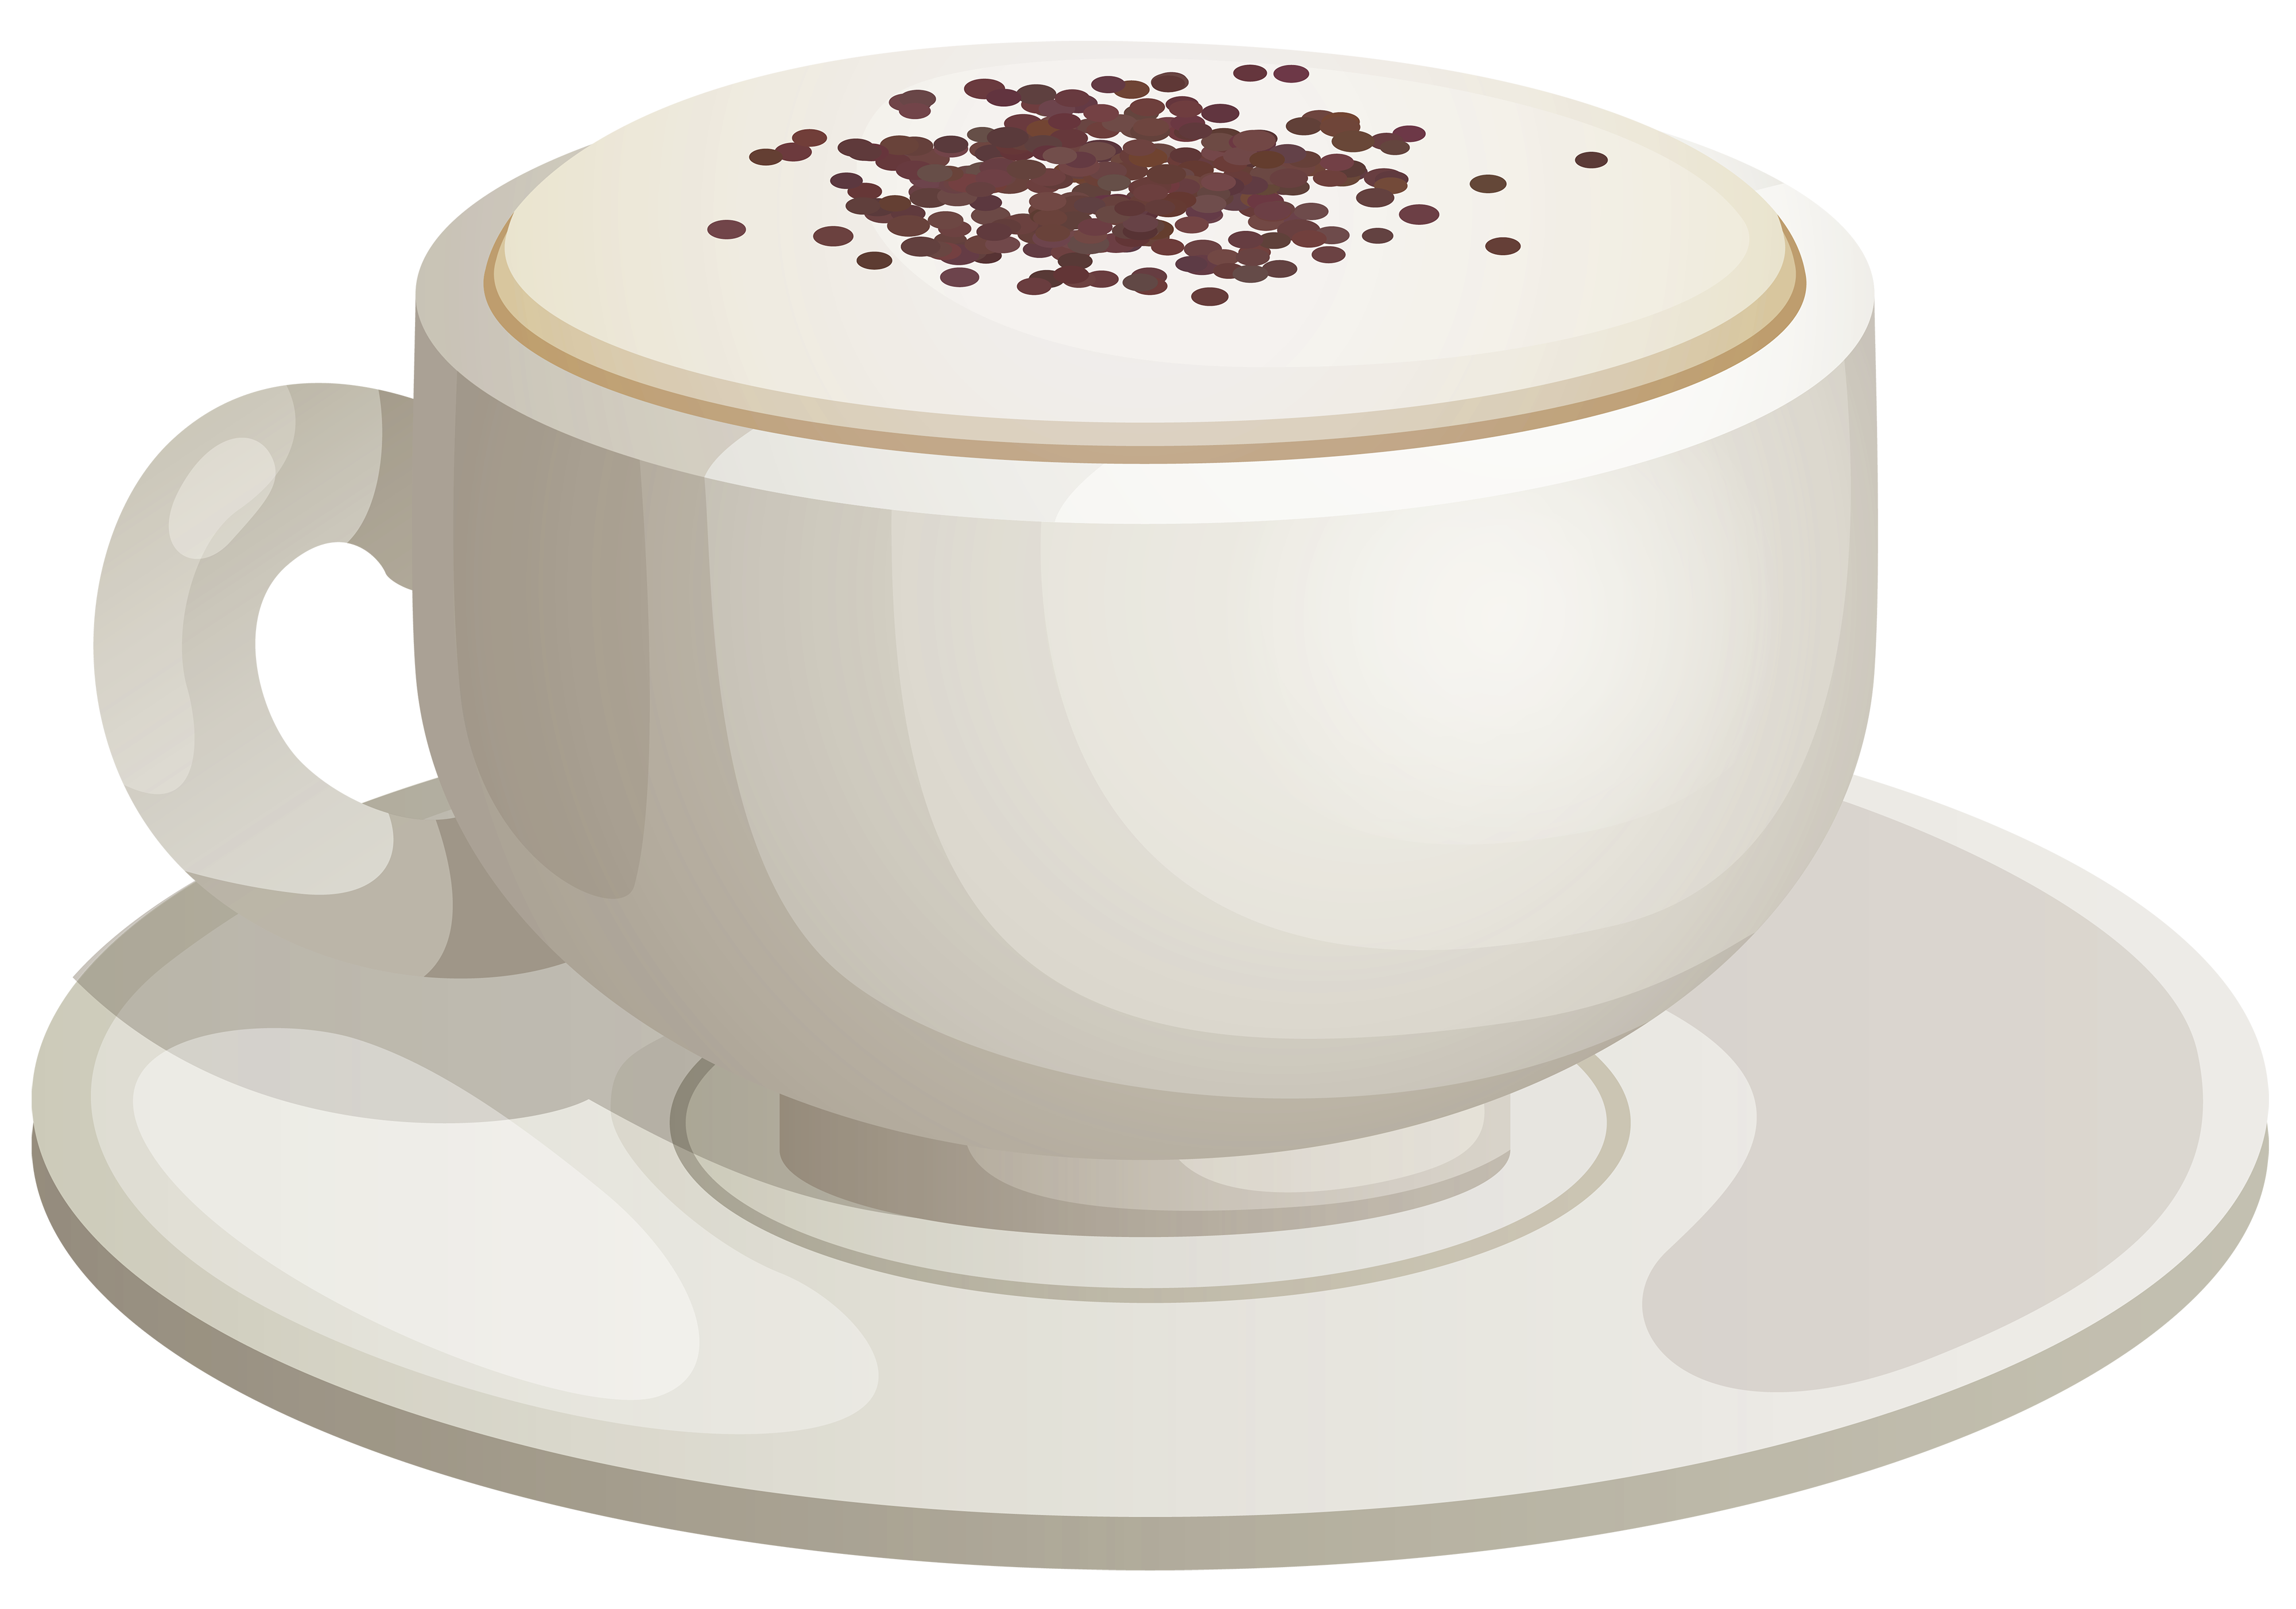 Clipart coffee foam. Cappuccino png images free